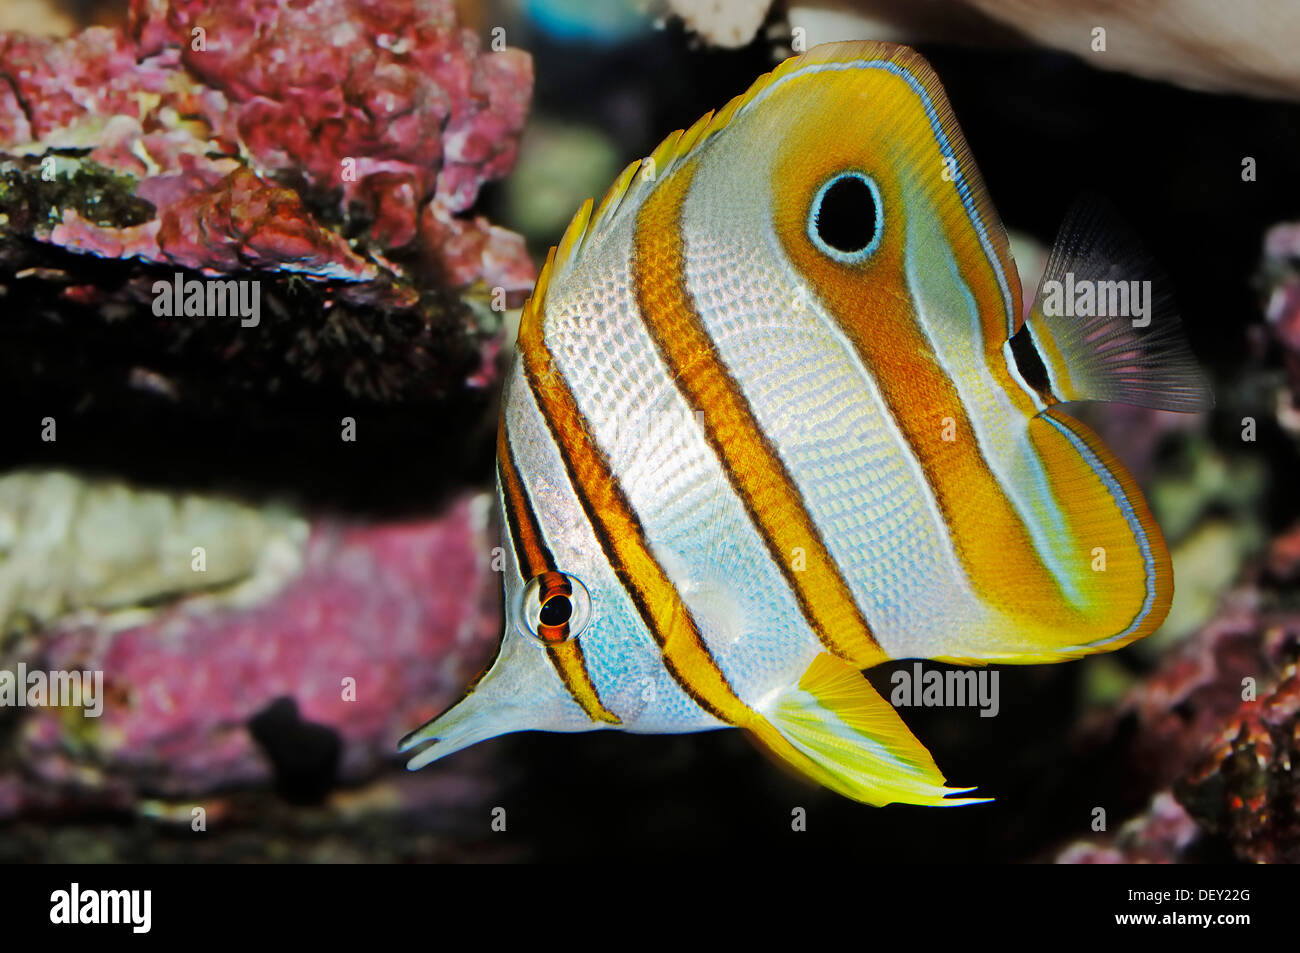 Copperband Butterflyfish or Beak Coralfish (Chelmon rostratus), native to the Great Barrier Reef and the Indo-Pacific - Stock Image